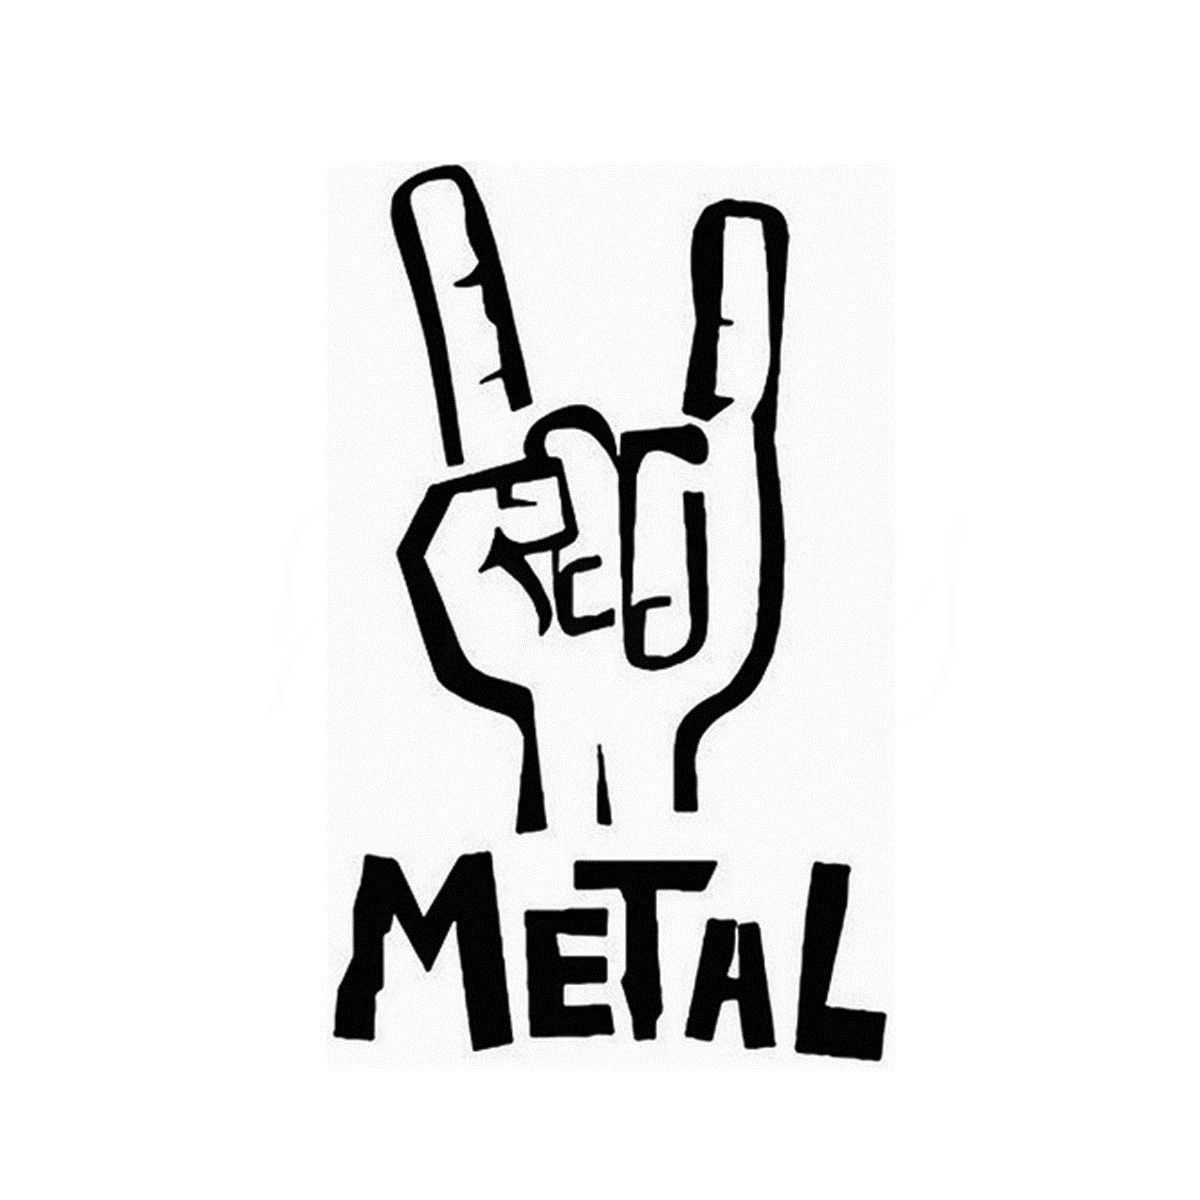 Heavy Metal Sticker Vinyl Decal Electric Bass Guitar Rock Personality Sticker Wall Home Glass Window Door